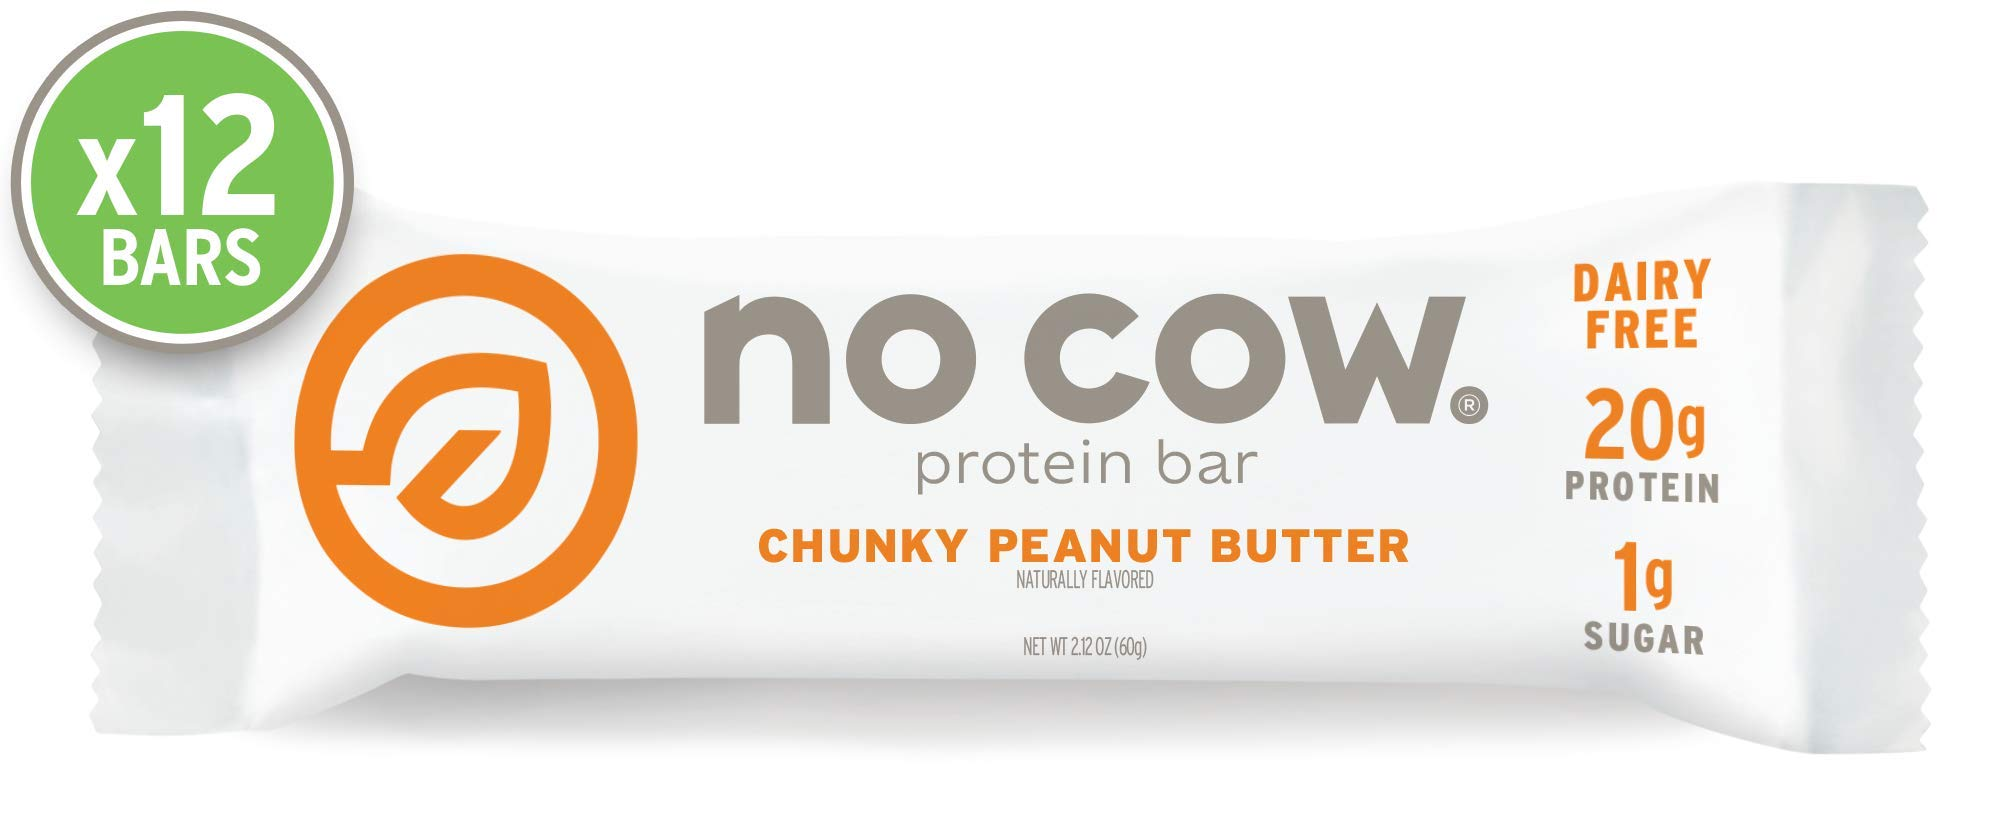 No Cow Protein bar, Chunky Peanut Butter, 21g Plant Based Protein, Keto Friendly, Low Sugar, Dairy Free, Gluten Free, Vegan, High Fiber, Non-GMO, 12Count by No Cow